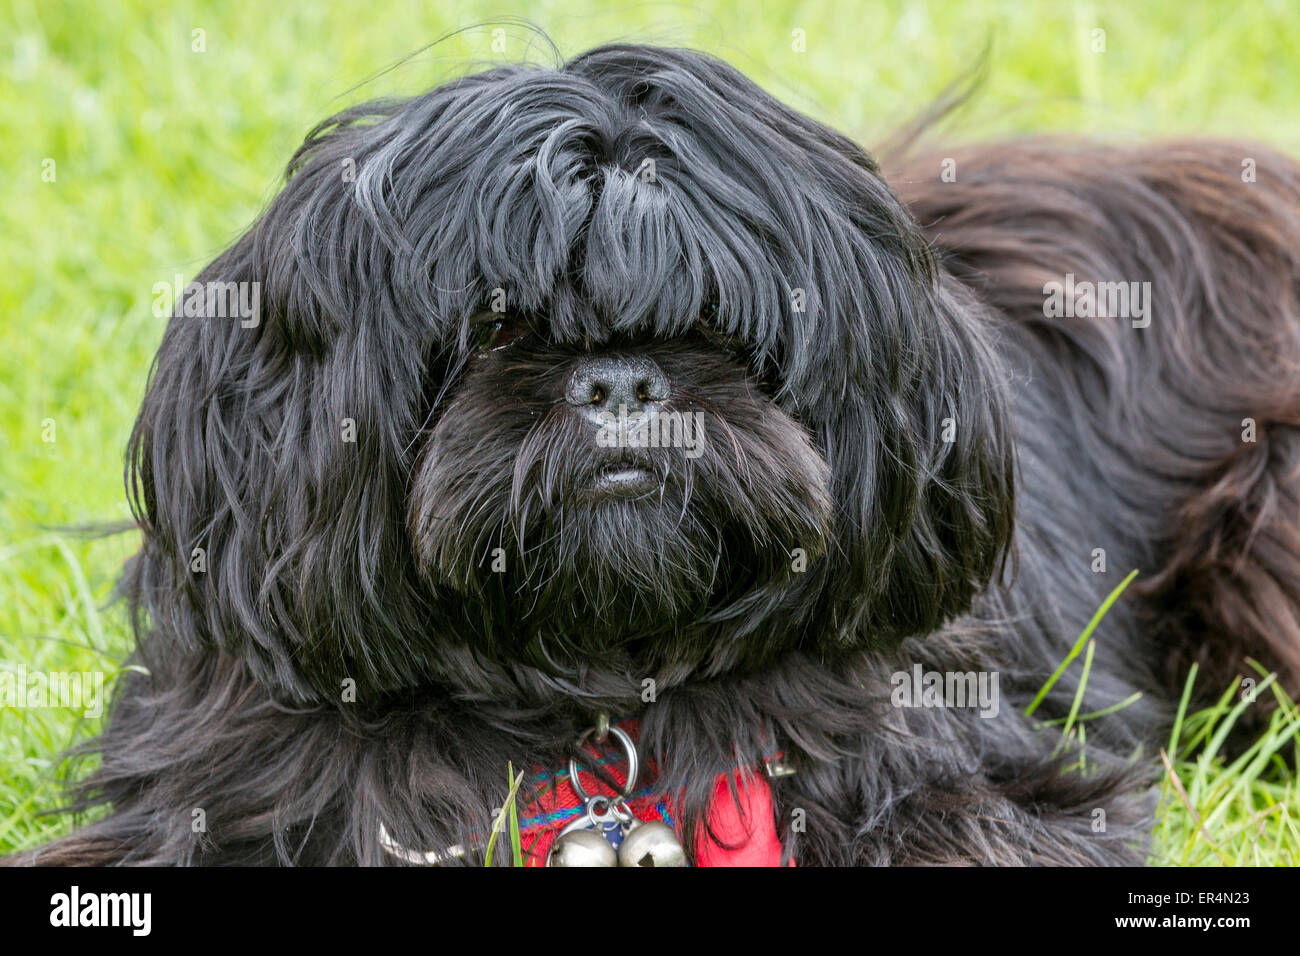 Dog at The Festival Of Country Life, Lamporthall, Lamport, Northamptonshire - Stock Image